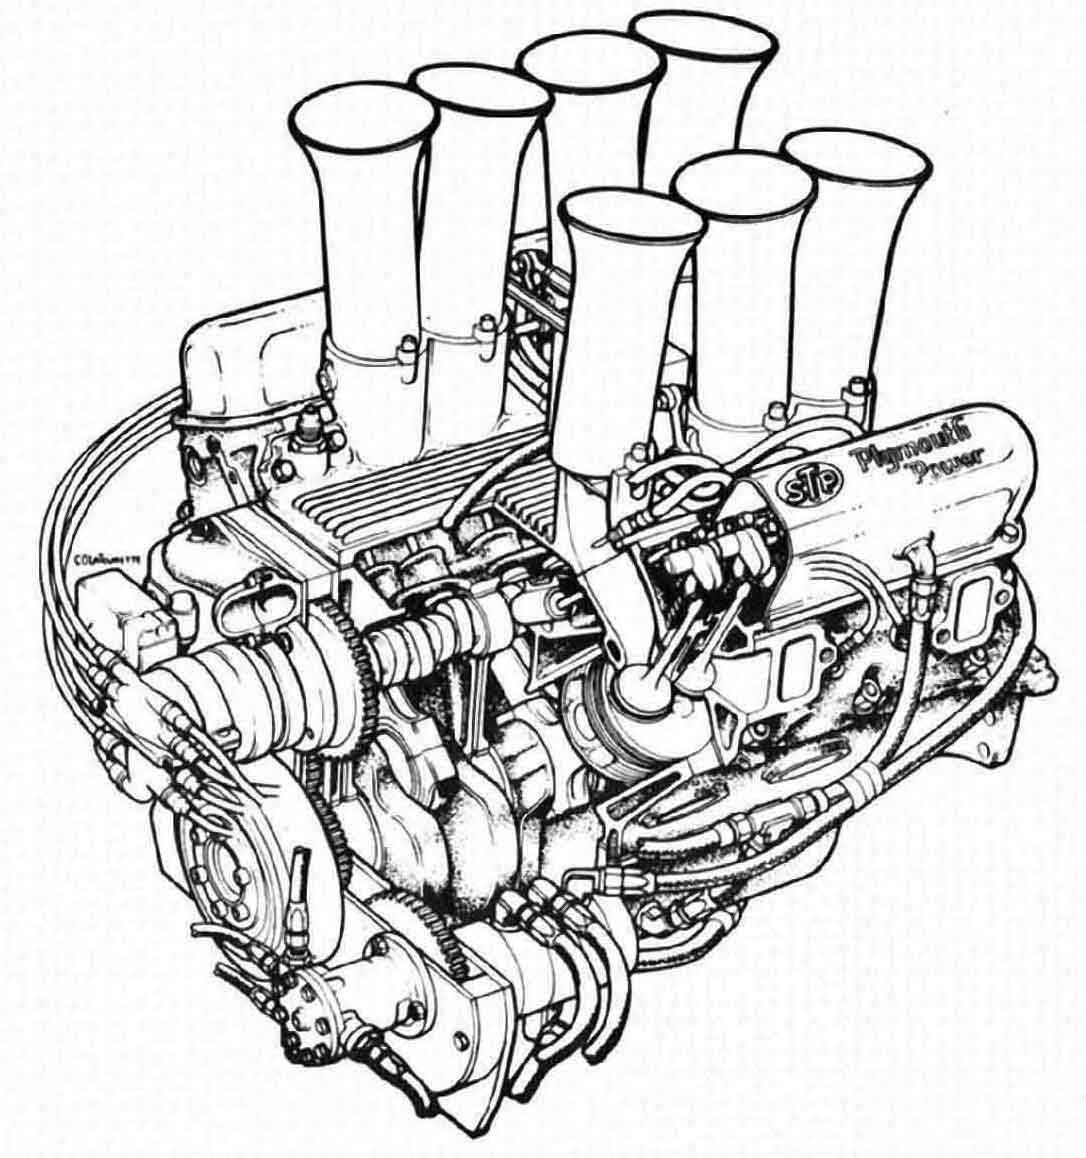 Ford Racing 302 Engine